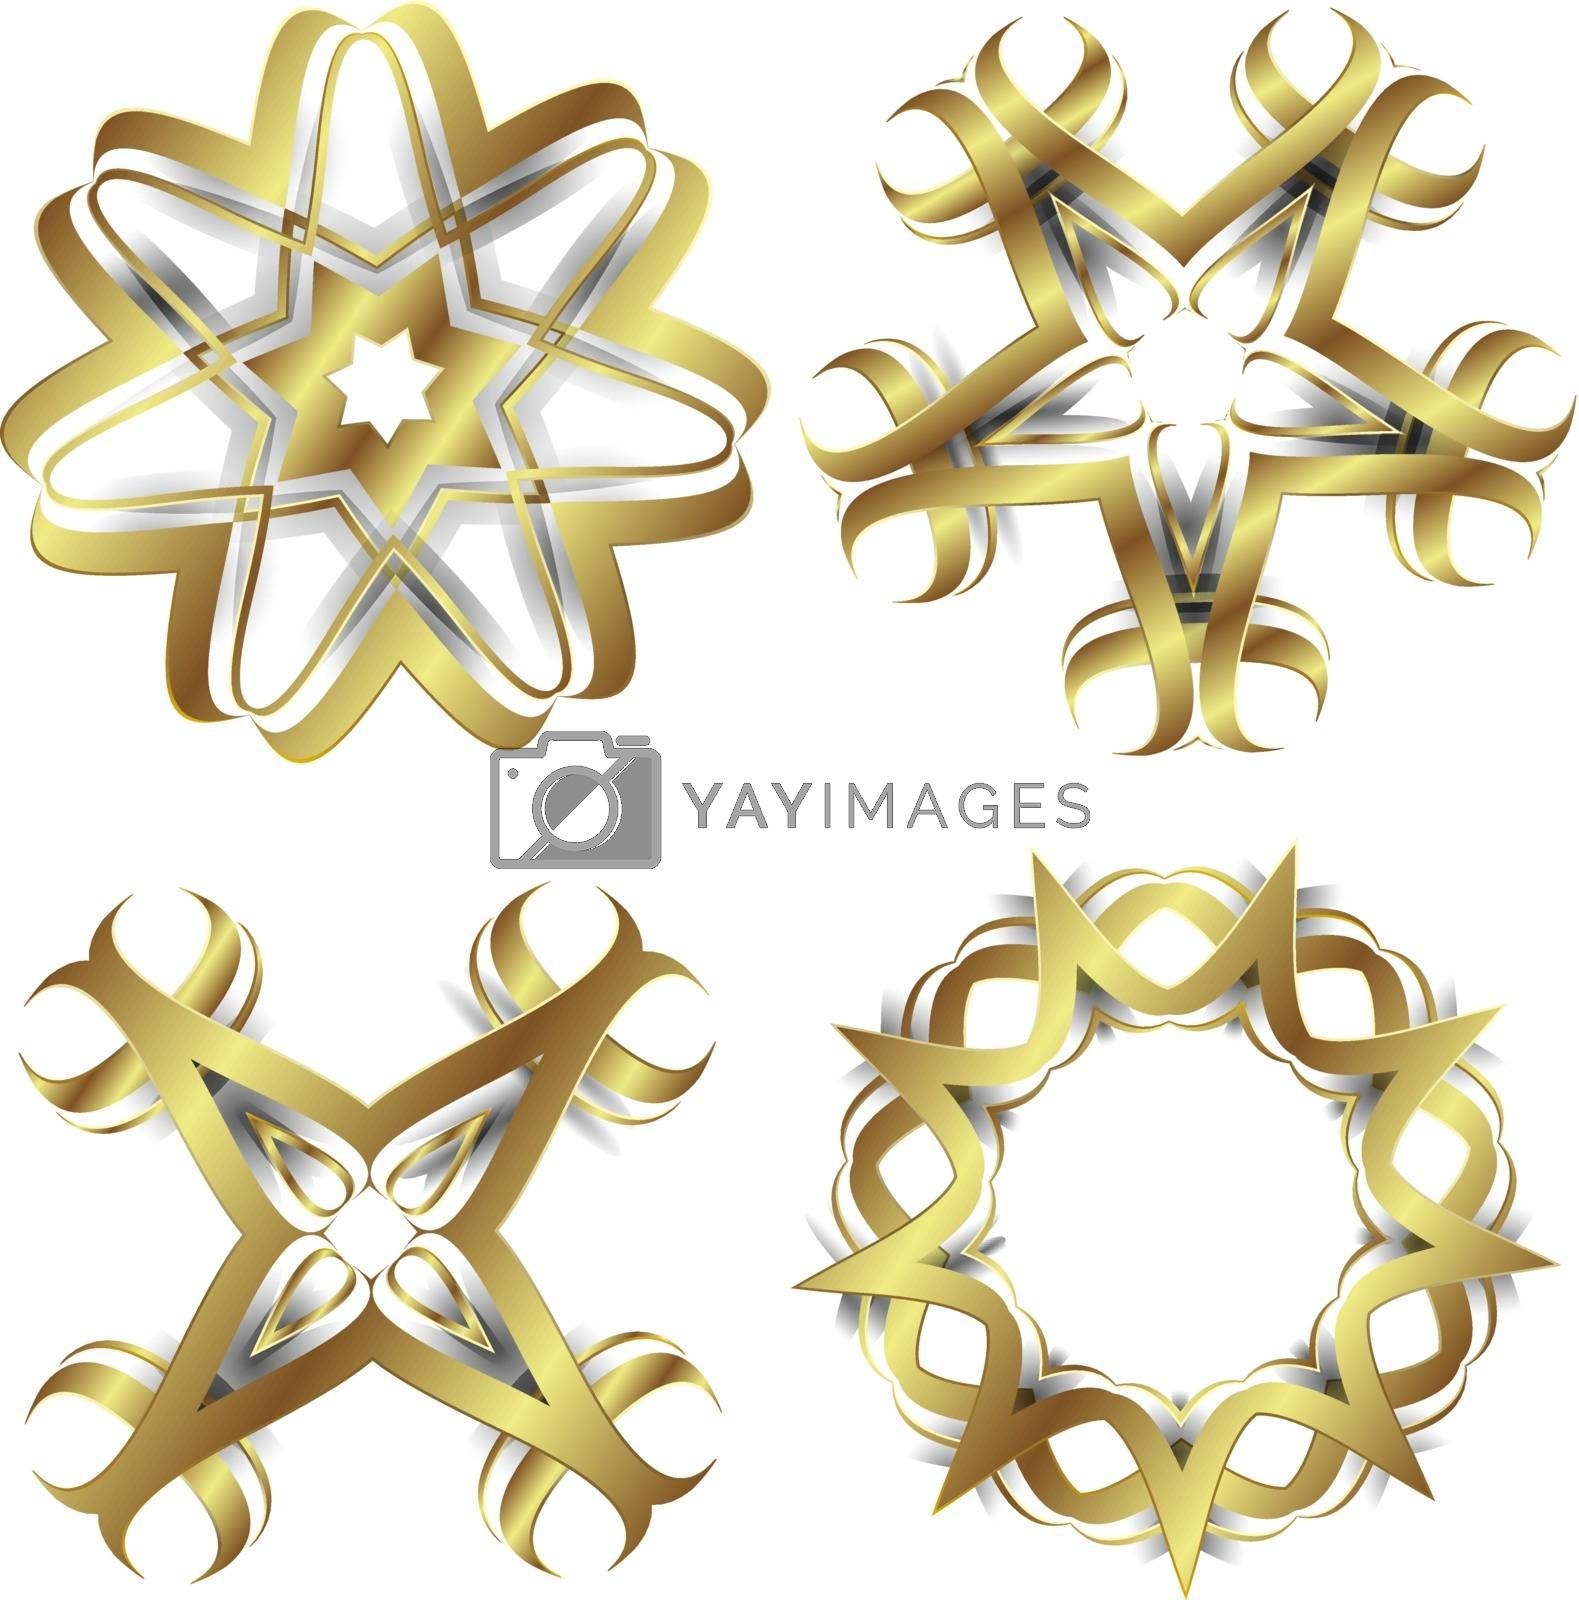 Gold abstract flower elements for creative design tasks